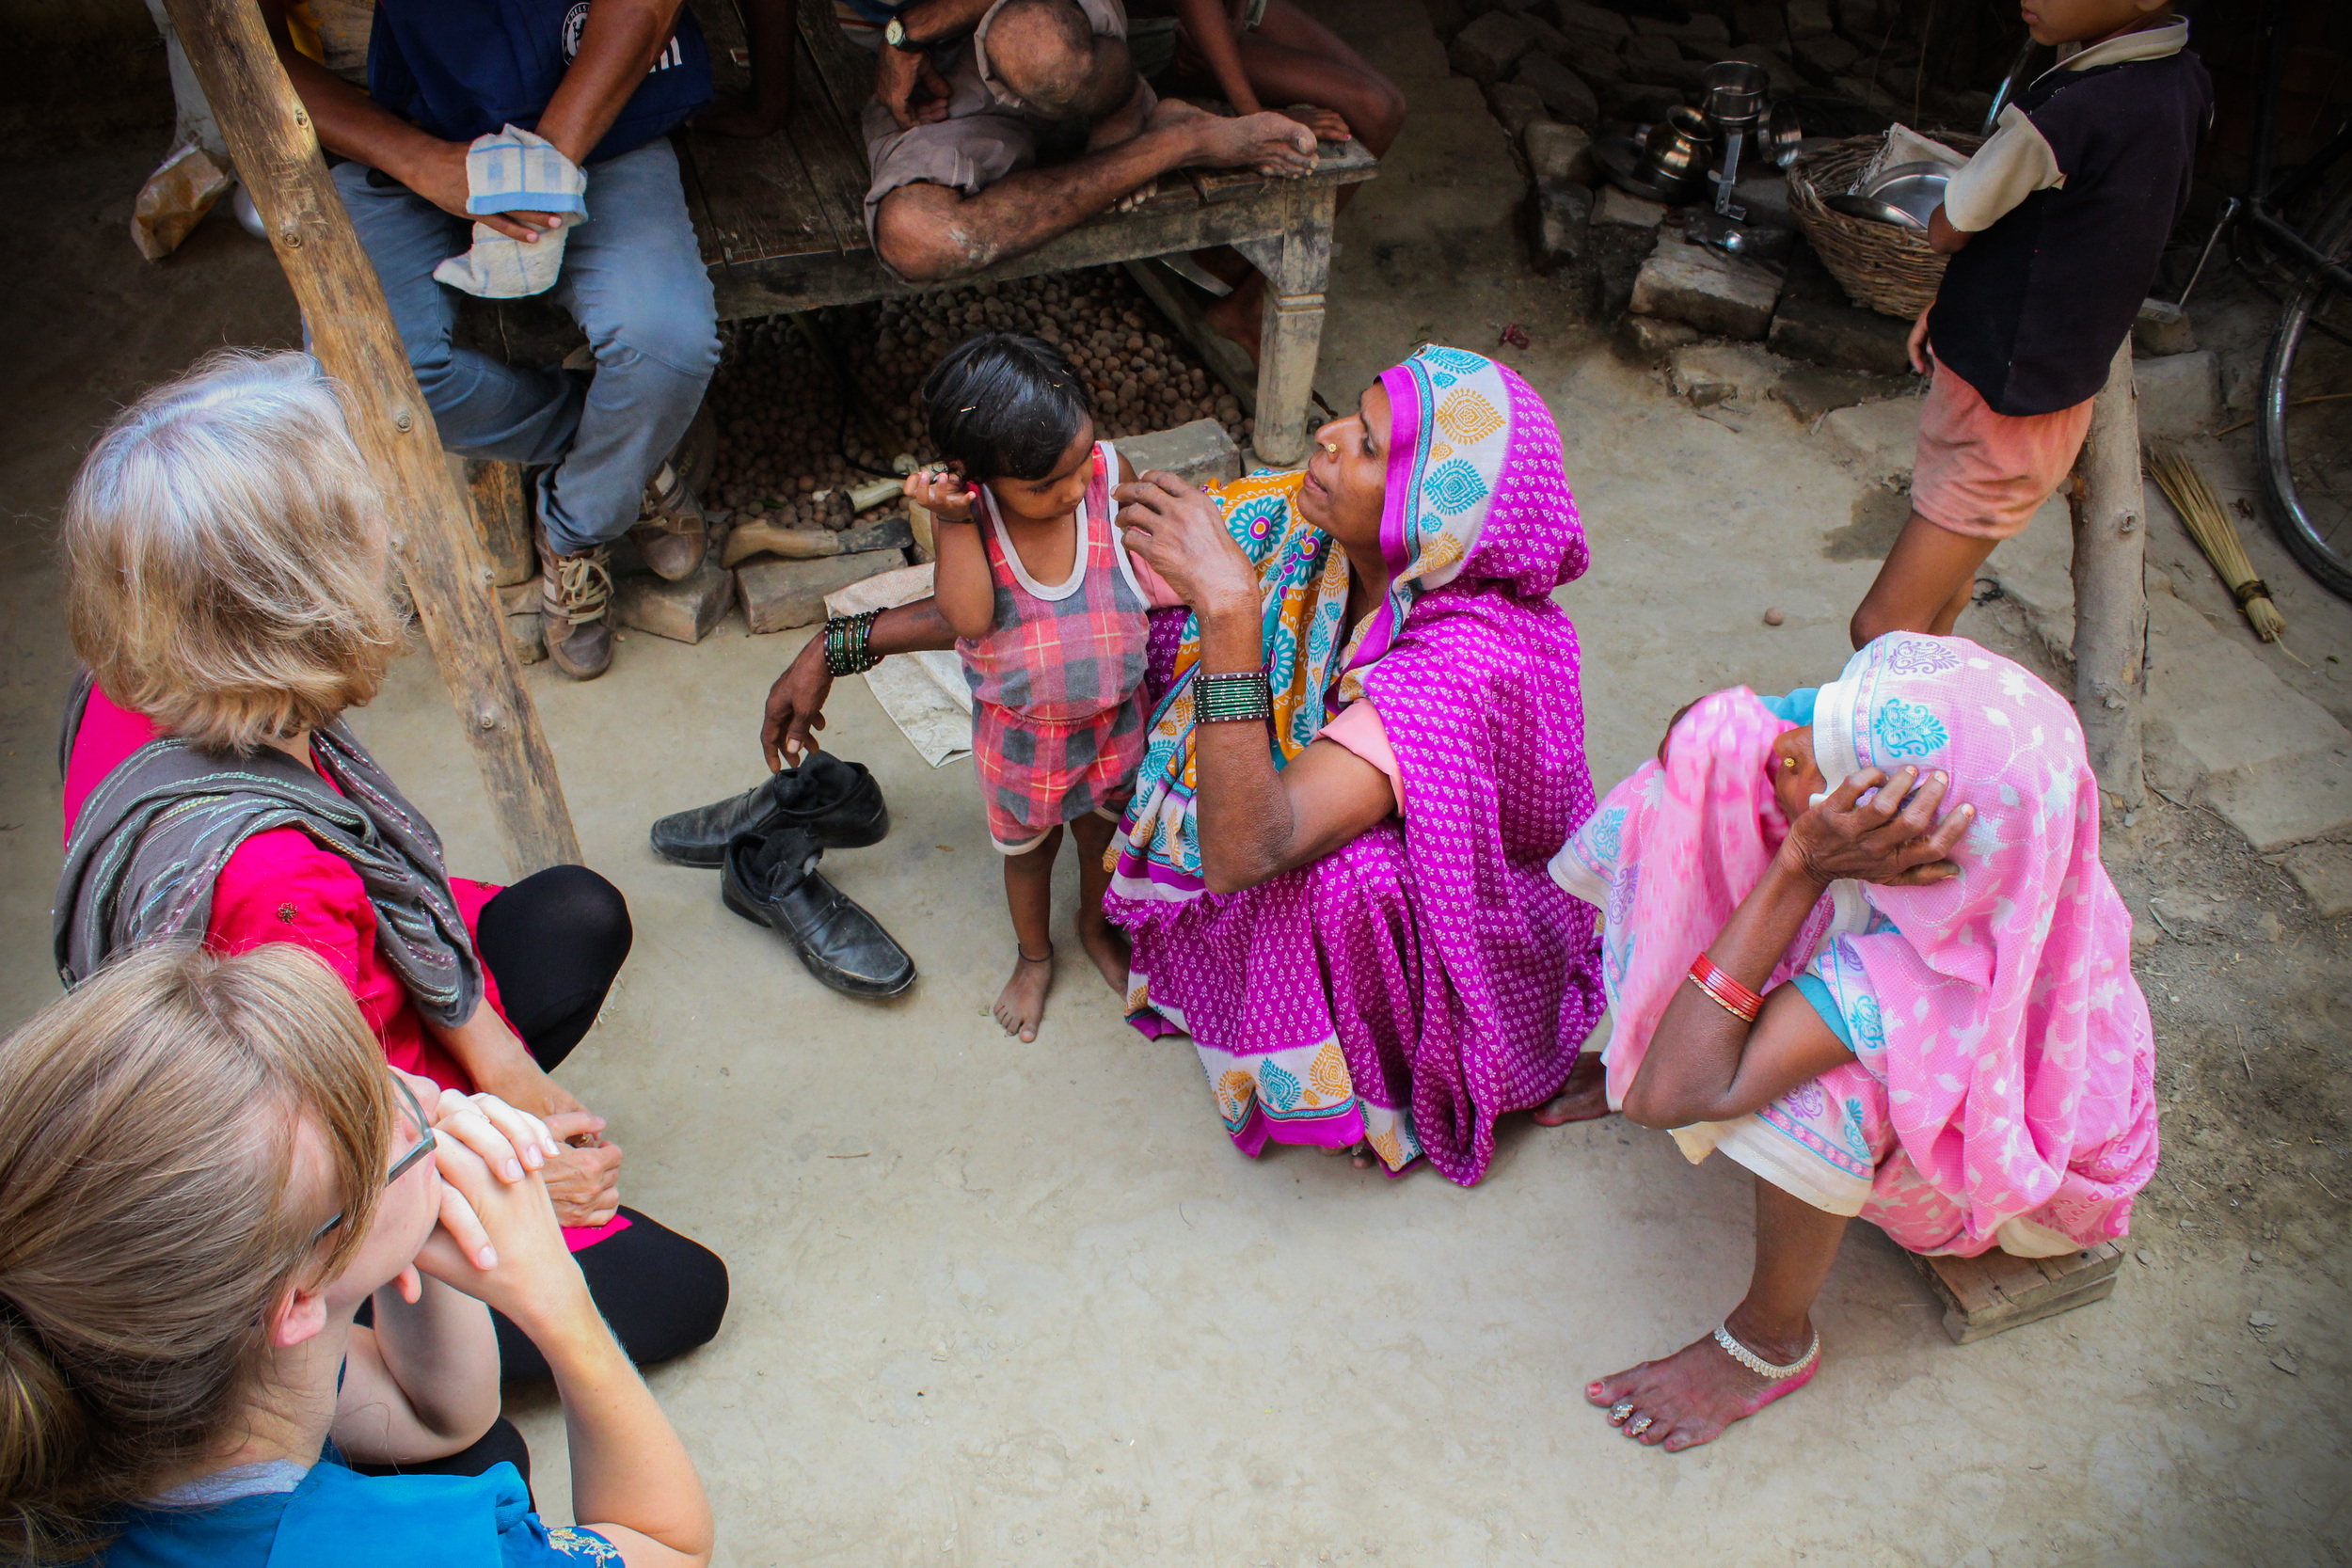 Santosh's mother-in-law (in purple) shares with Rosemary and Rachel her own story,later explaining that she has been sick with digestive issues and degenerative eye sight.